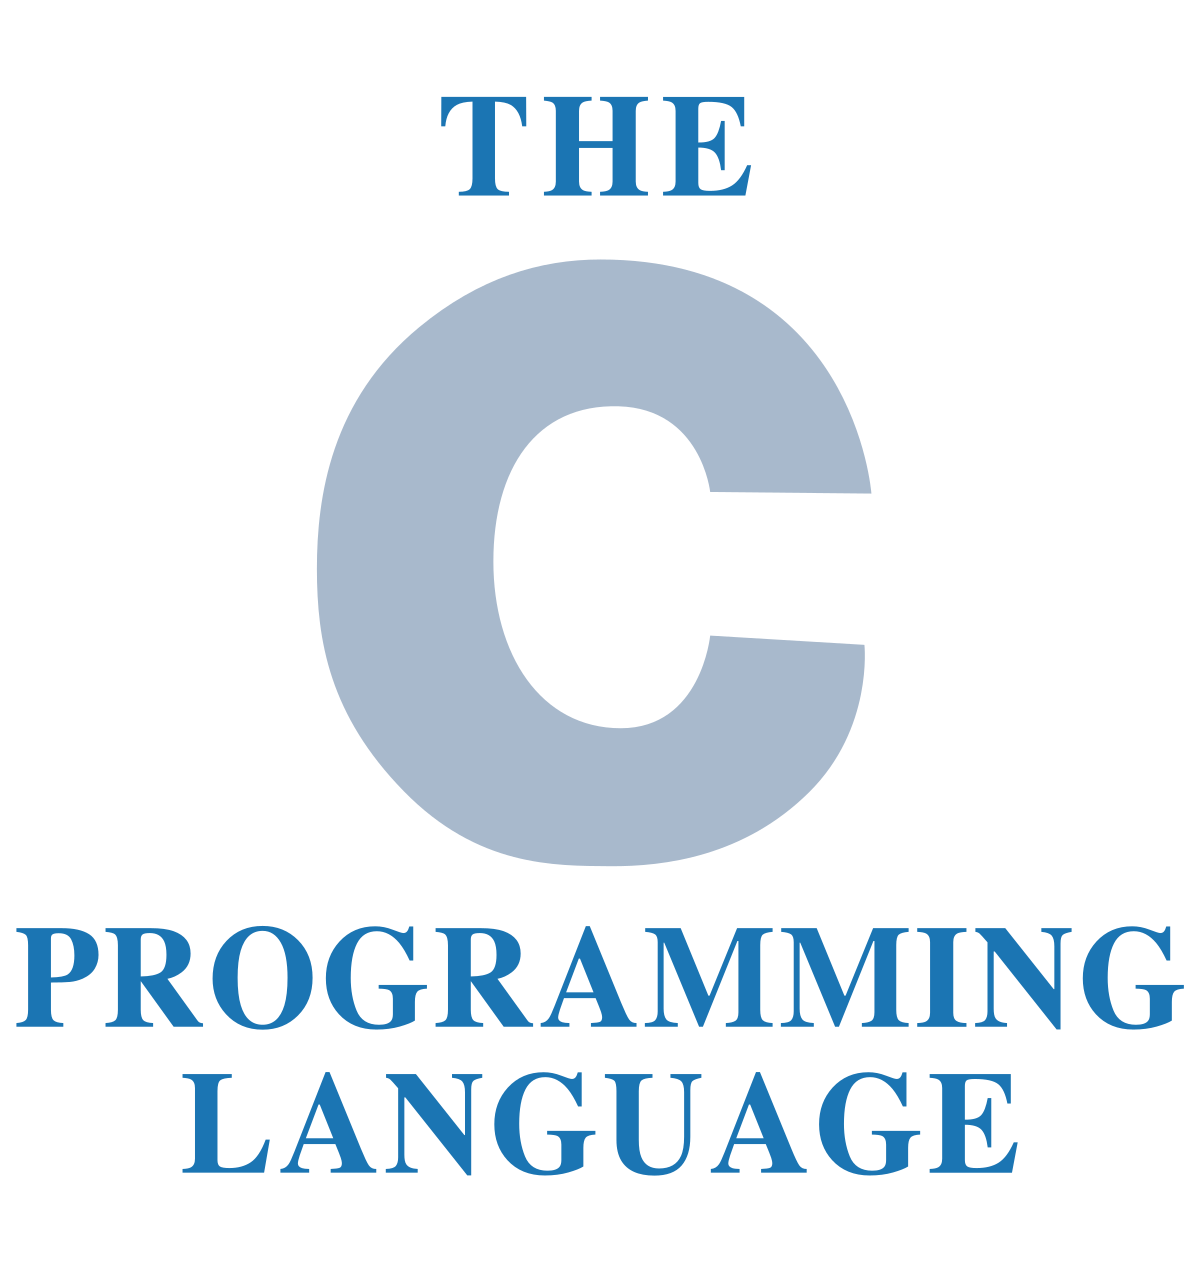 C (programming language).